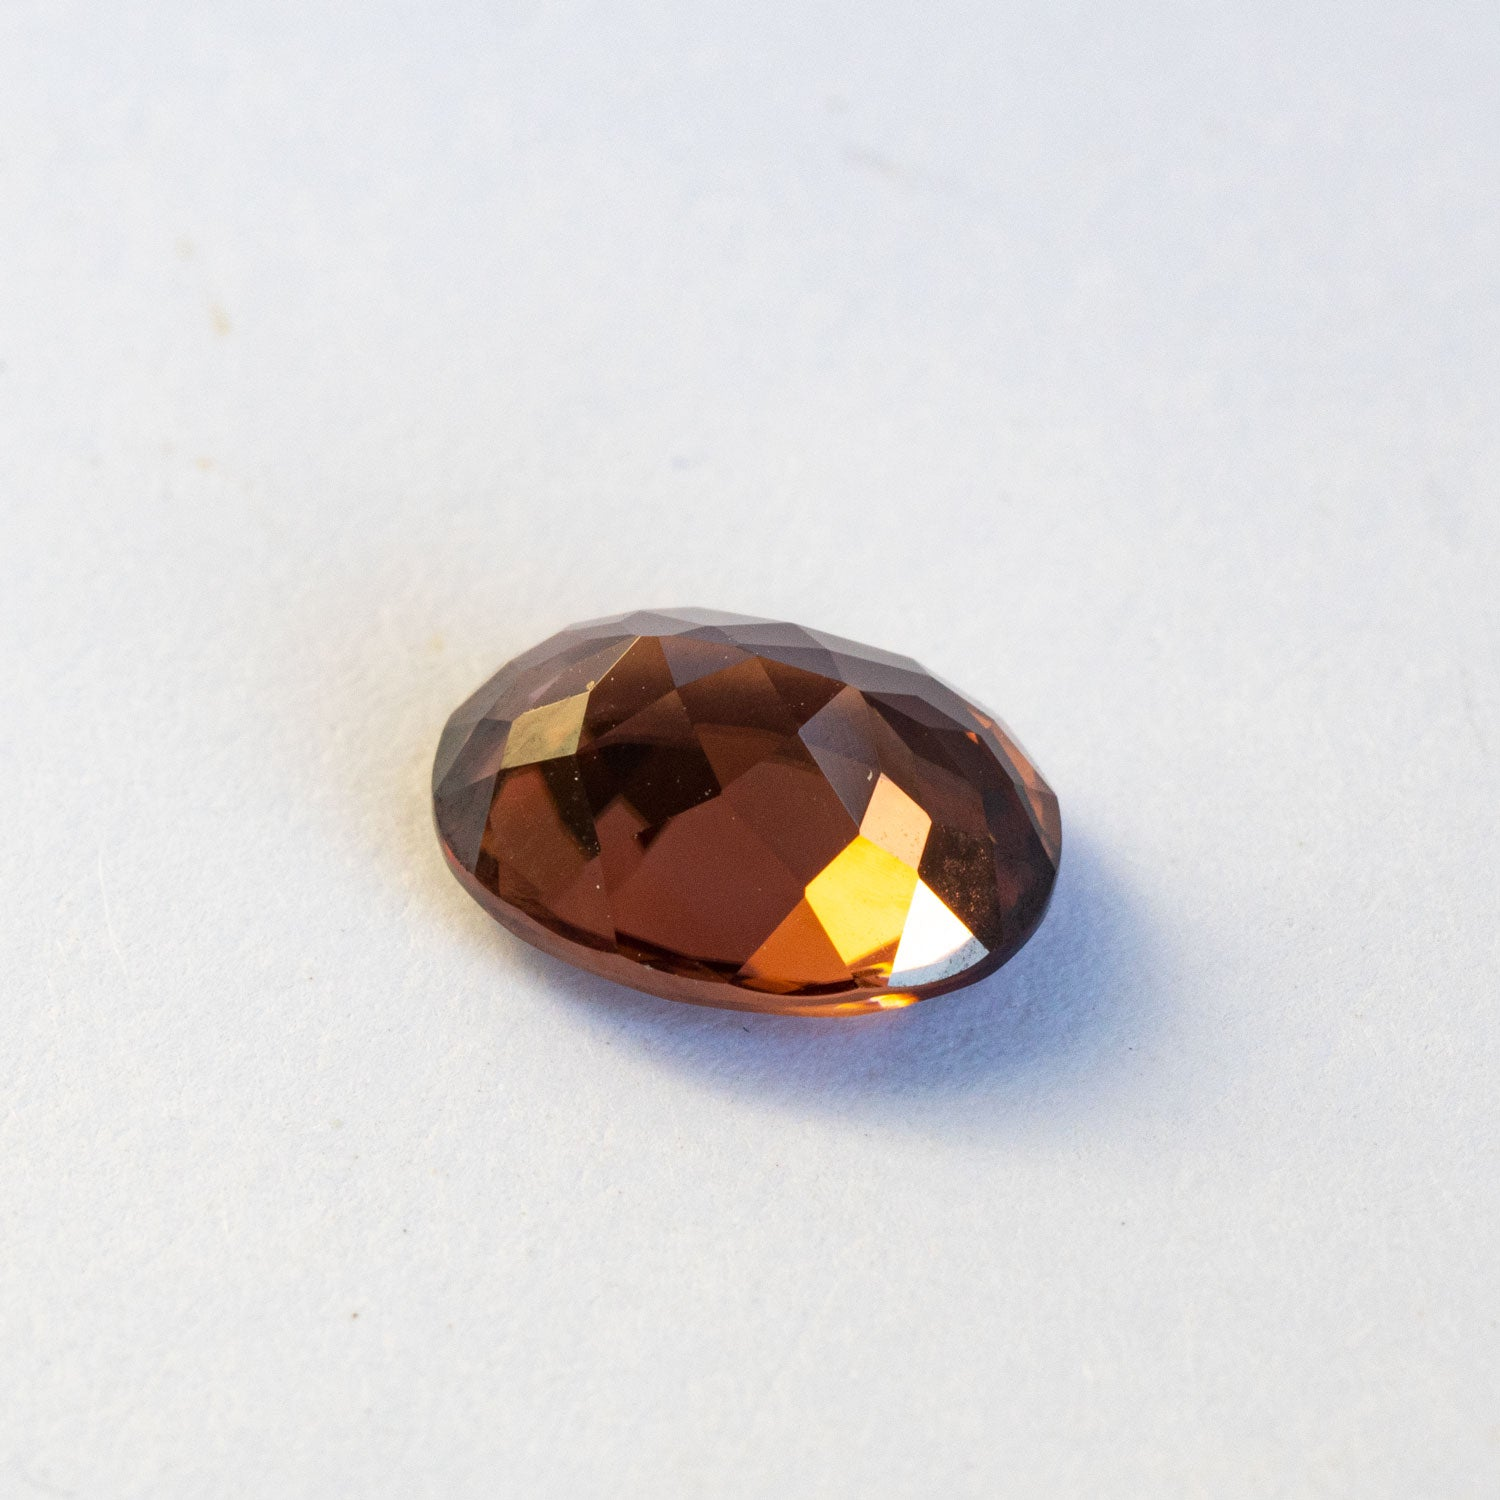 This earthy toned natural zircon is totally eye and loupe clean